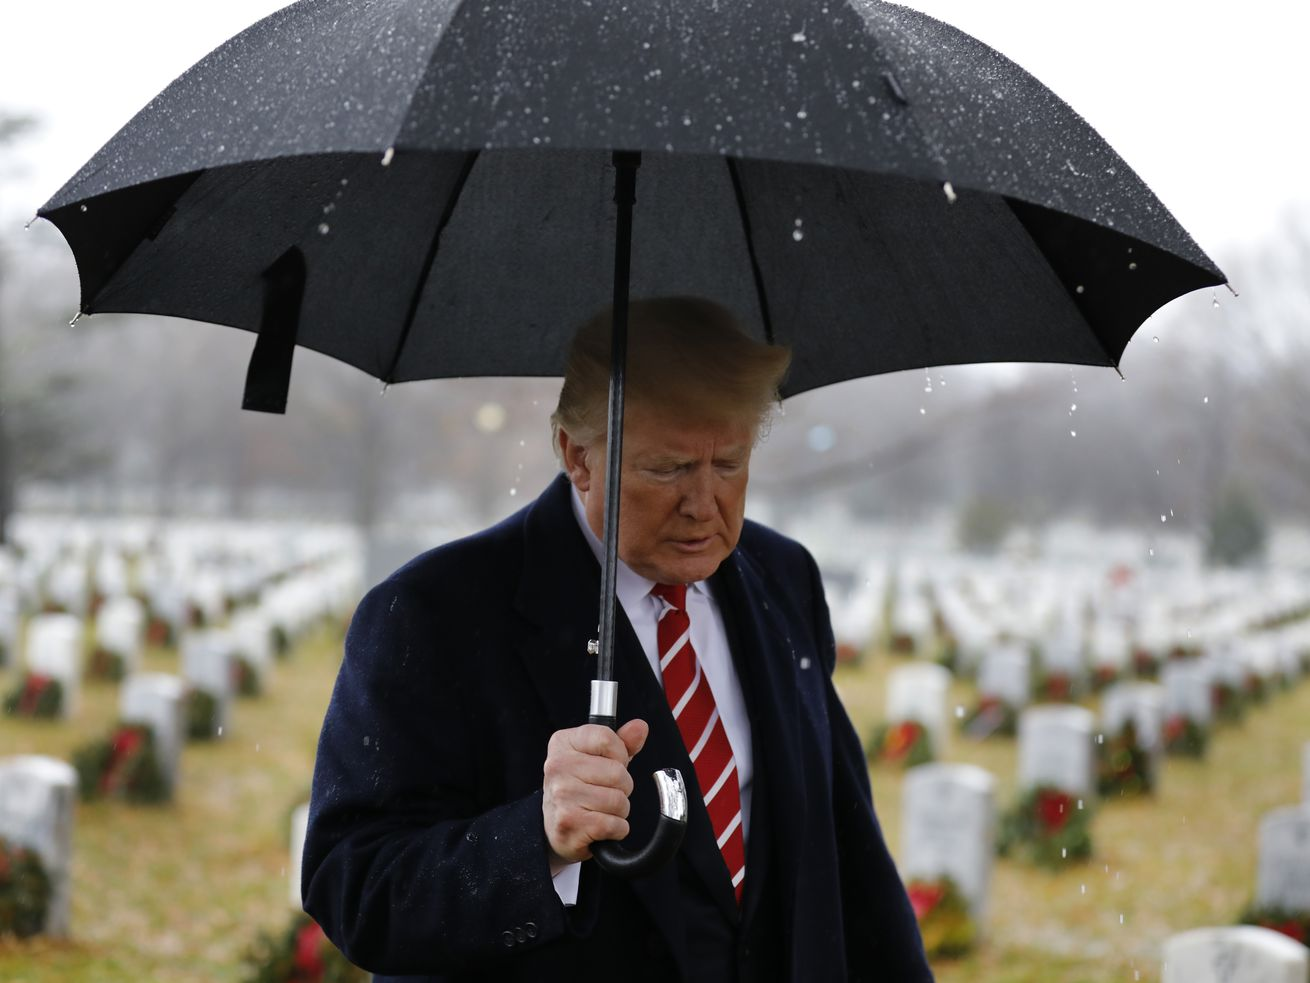 President Donald Trump visits Section 60 at Arlington National Cemetery on December 15, 2018, in Arlington, Virginia.